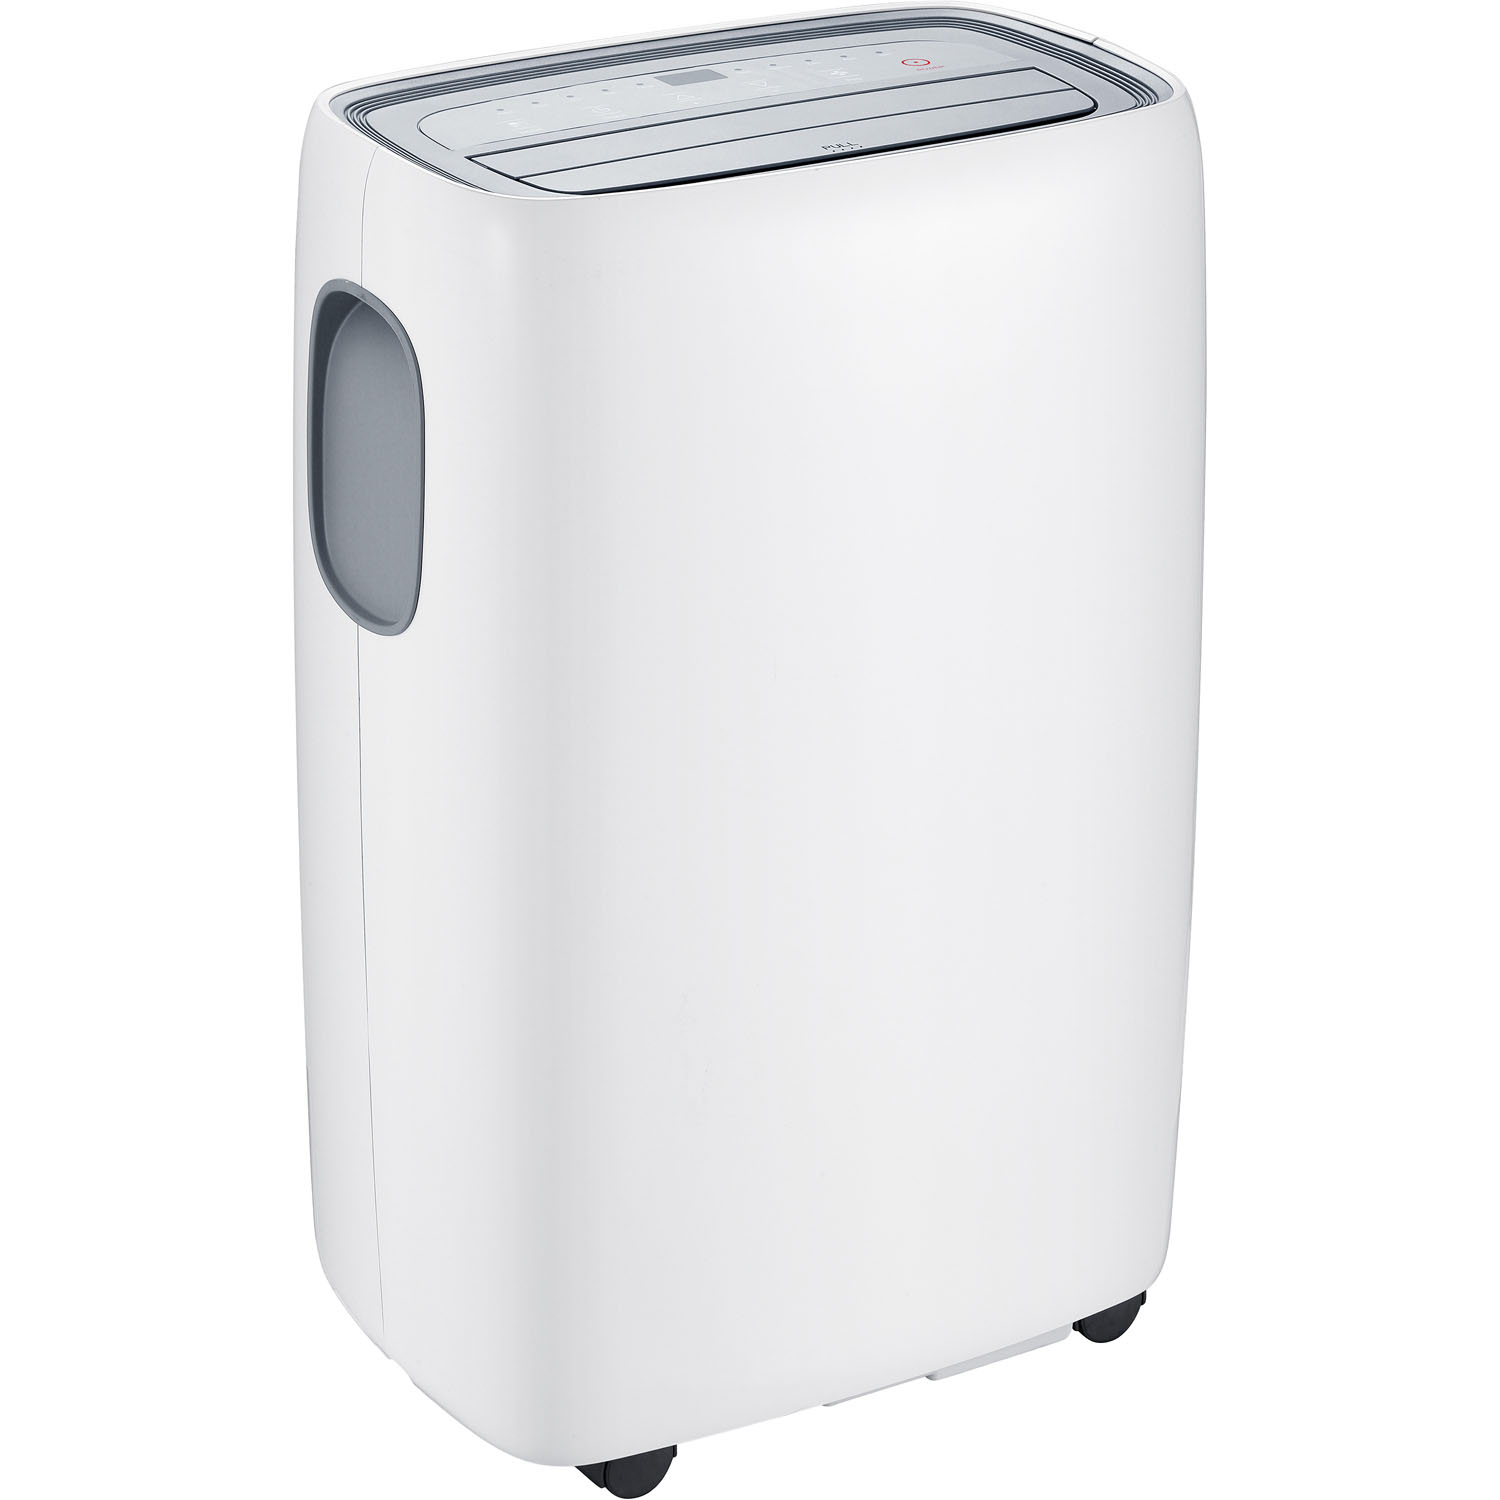 Tcl 10 000 btu portable air conditioner with remote for 11000 btu window air conditioner